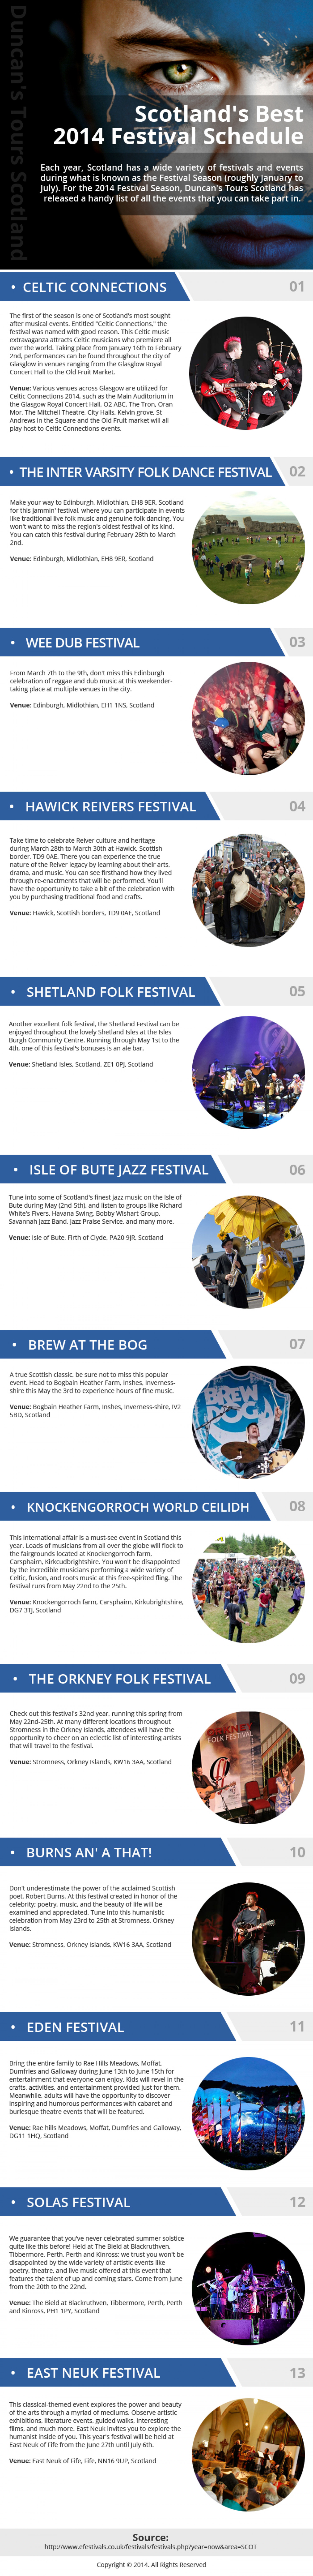 Scotland's Best 2014 Festival Schedule Infographic